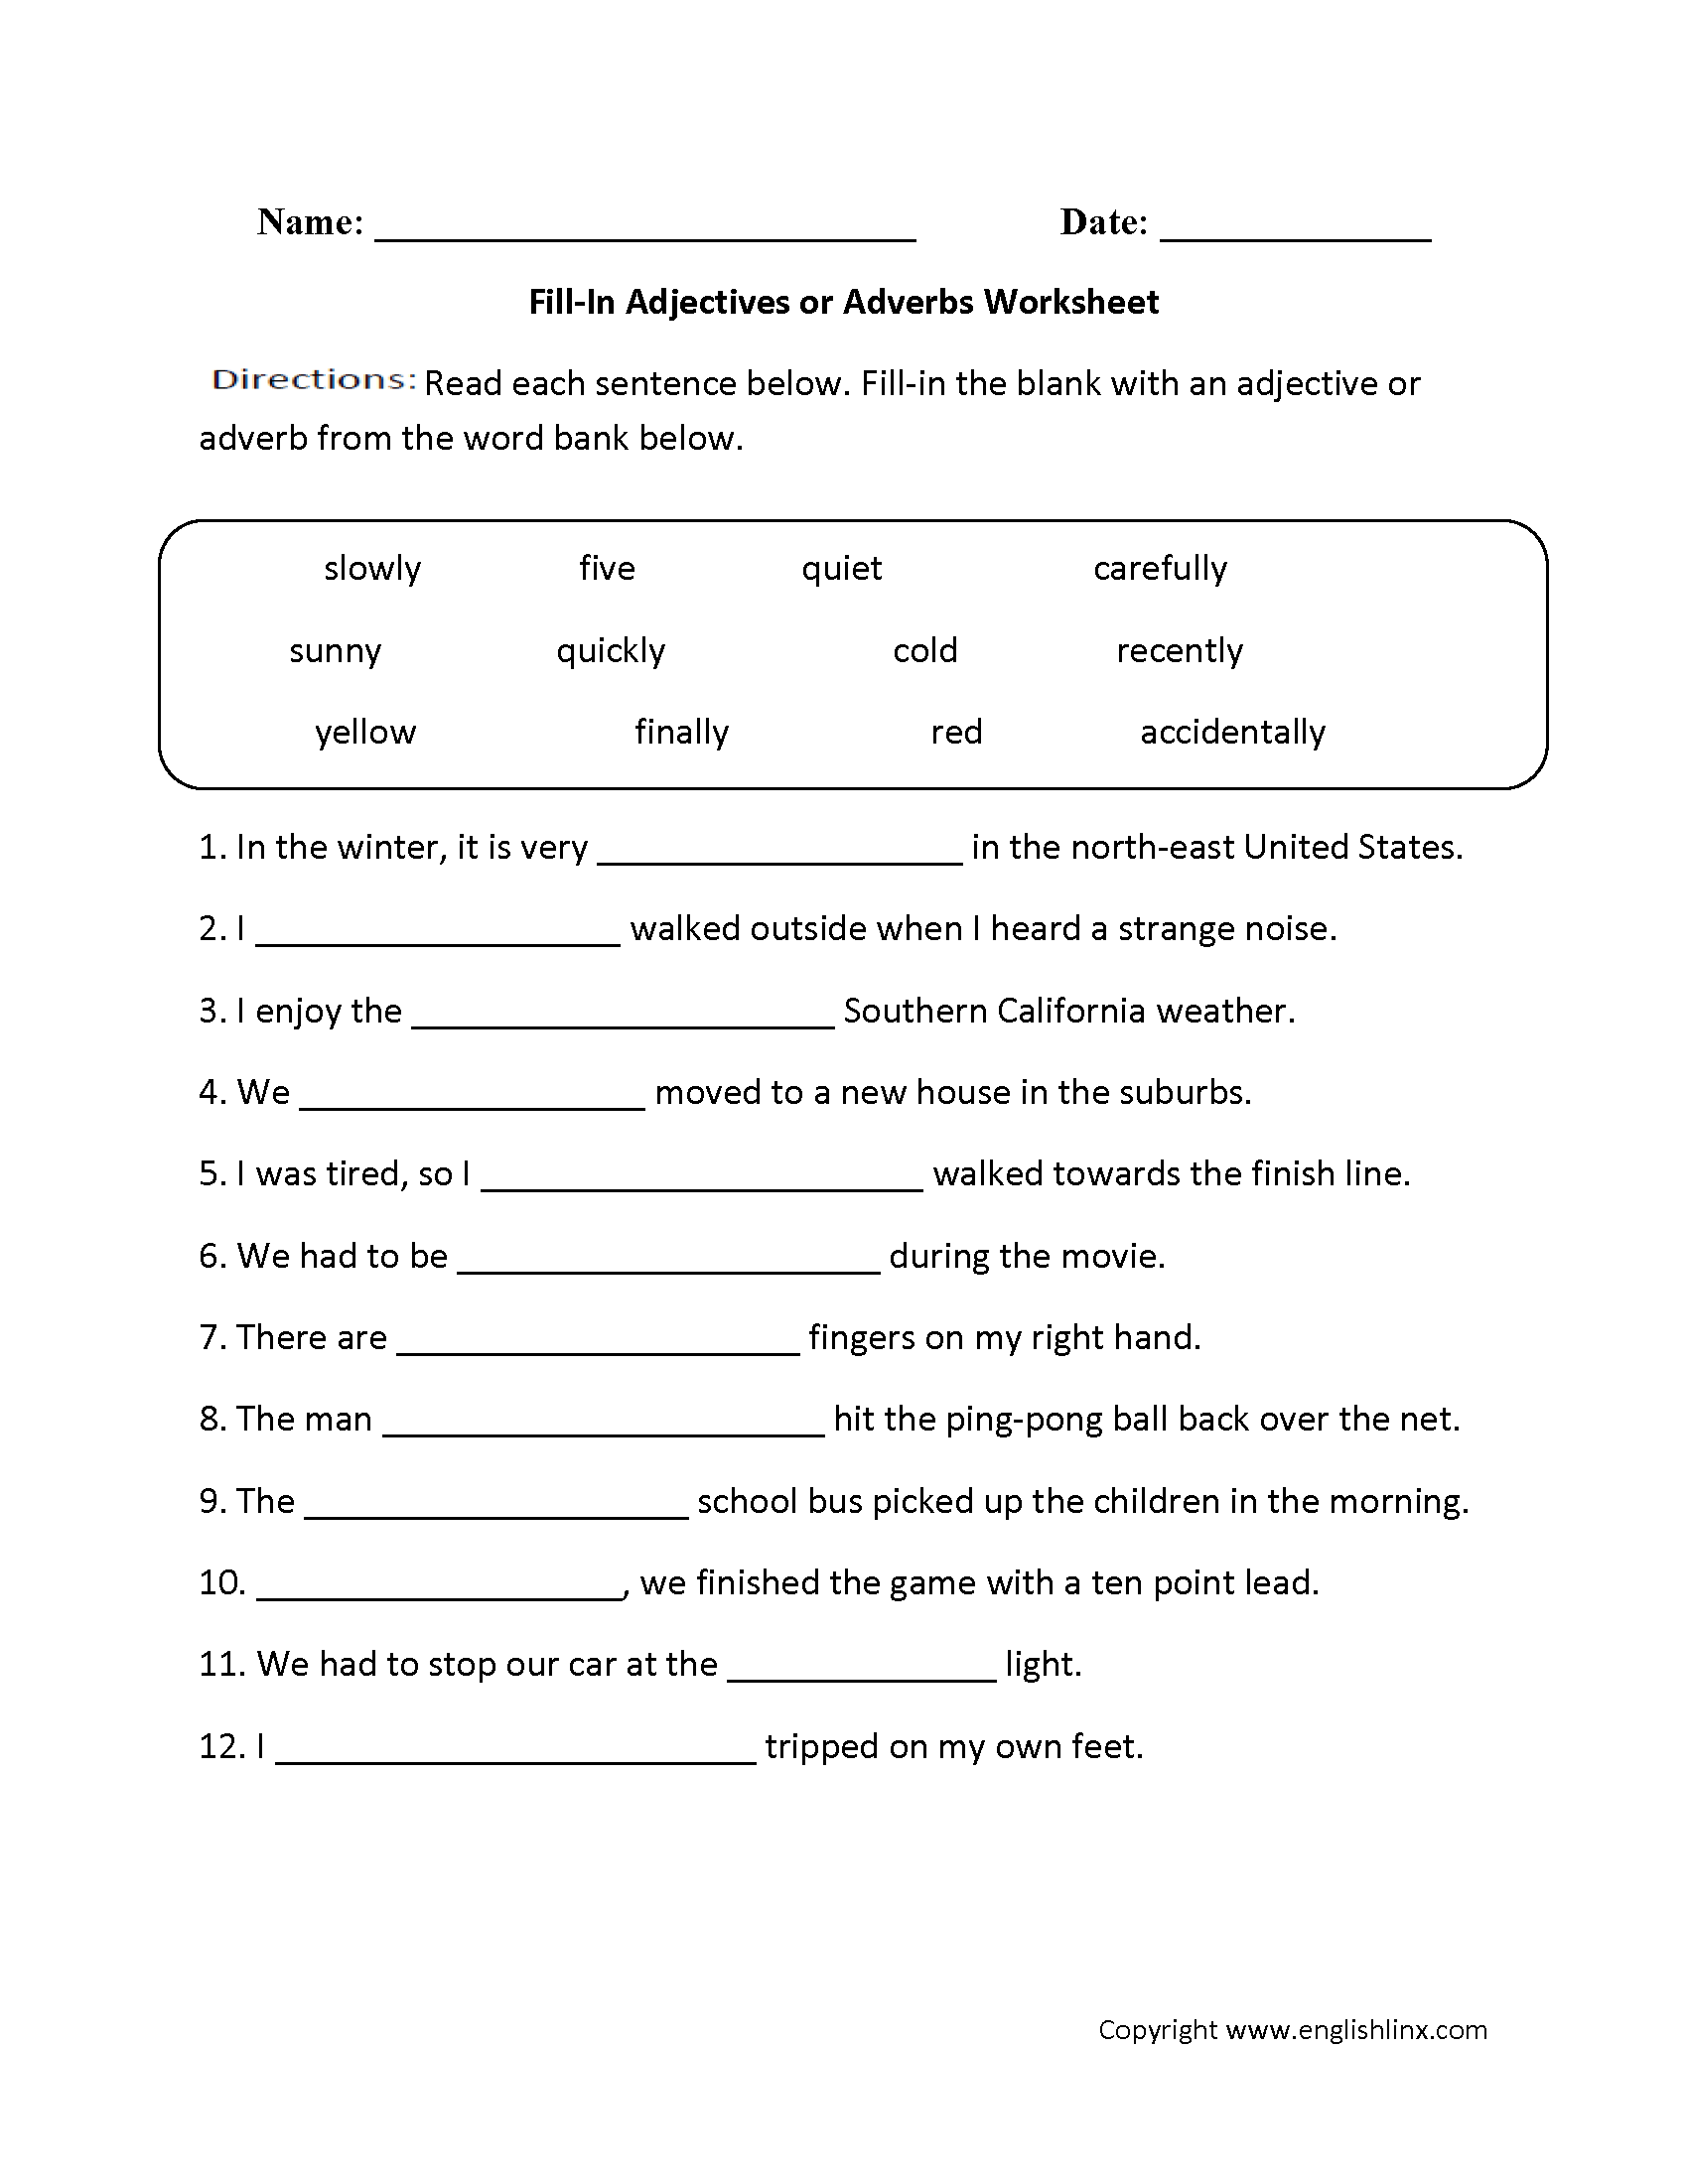 Worksheet Adjectives Exercises For Grade 5 adjectives worksheets or adverbs worksheet